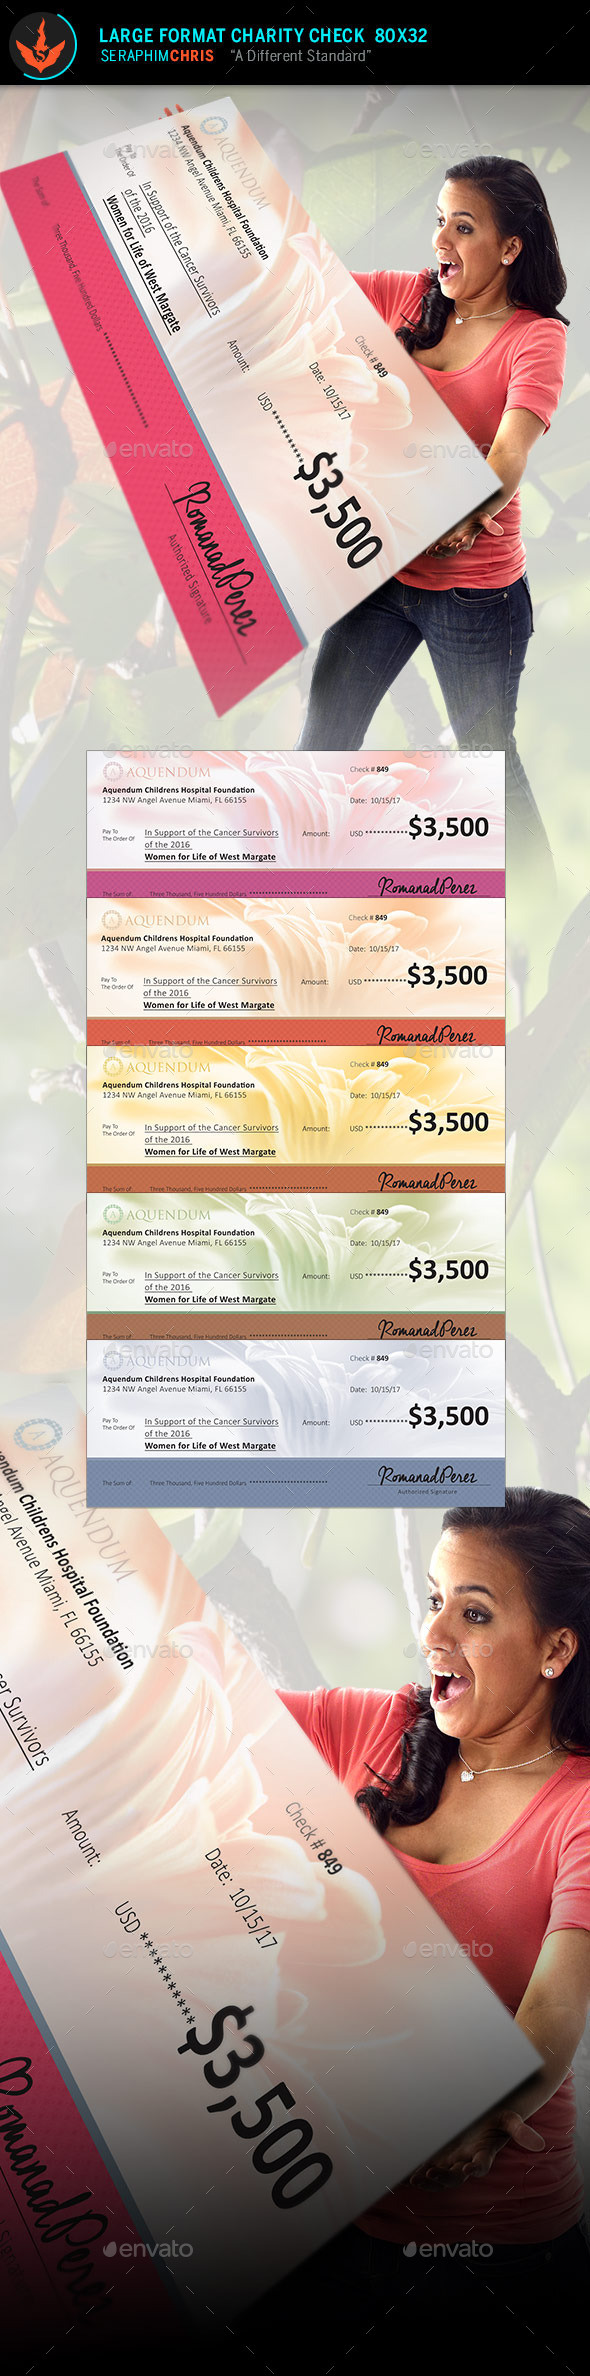 Large Format Charity Check Template 2 - Signage Print Templates